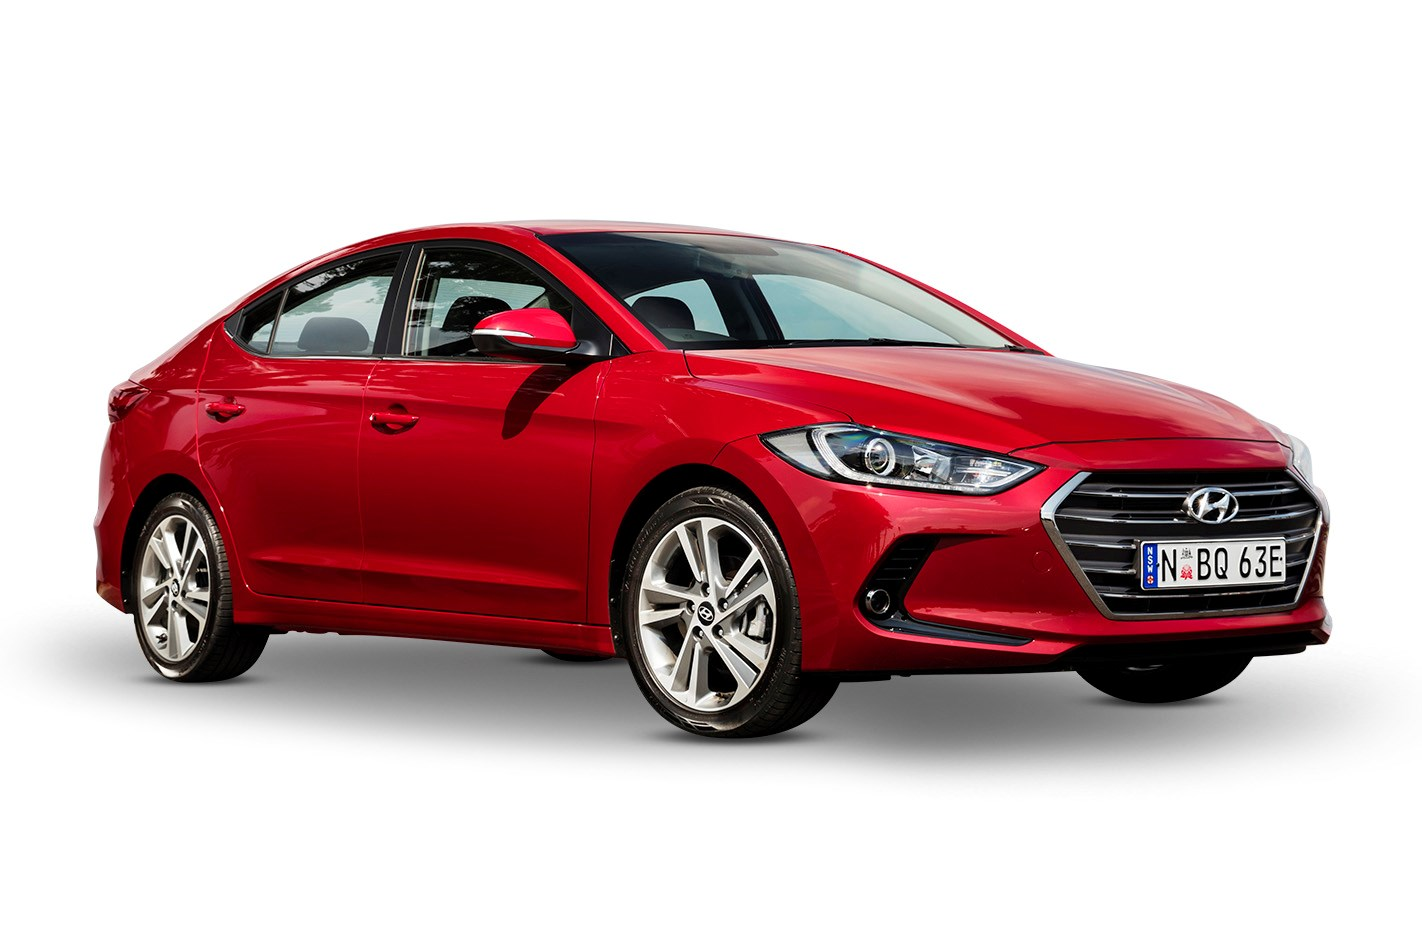 motion models new hyundai elantra sport cars reviews motor profile review side in used gt research trend